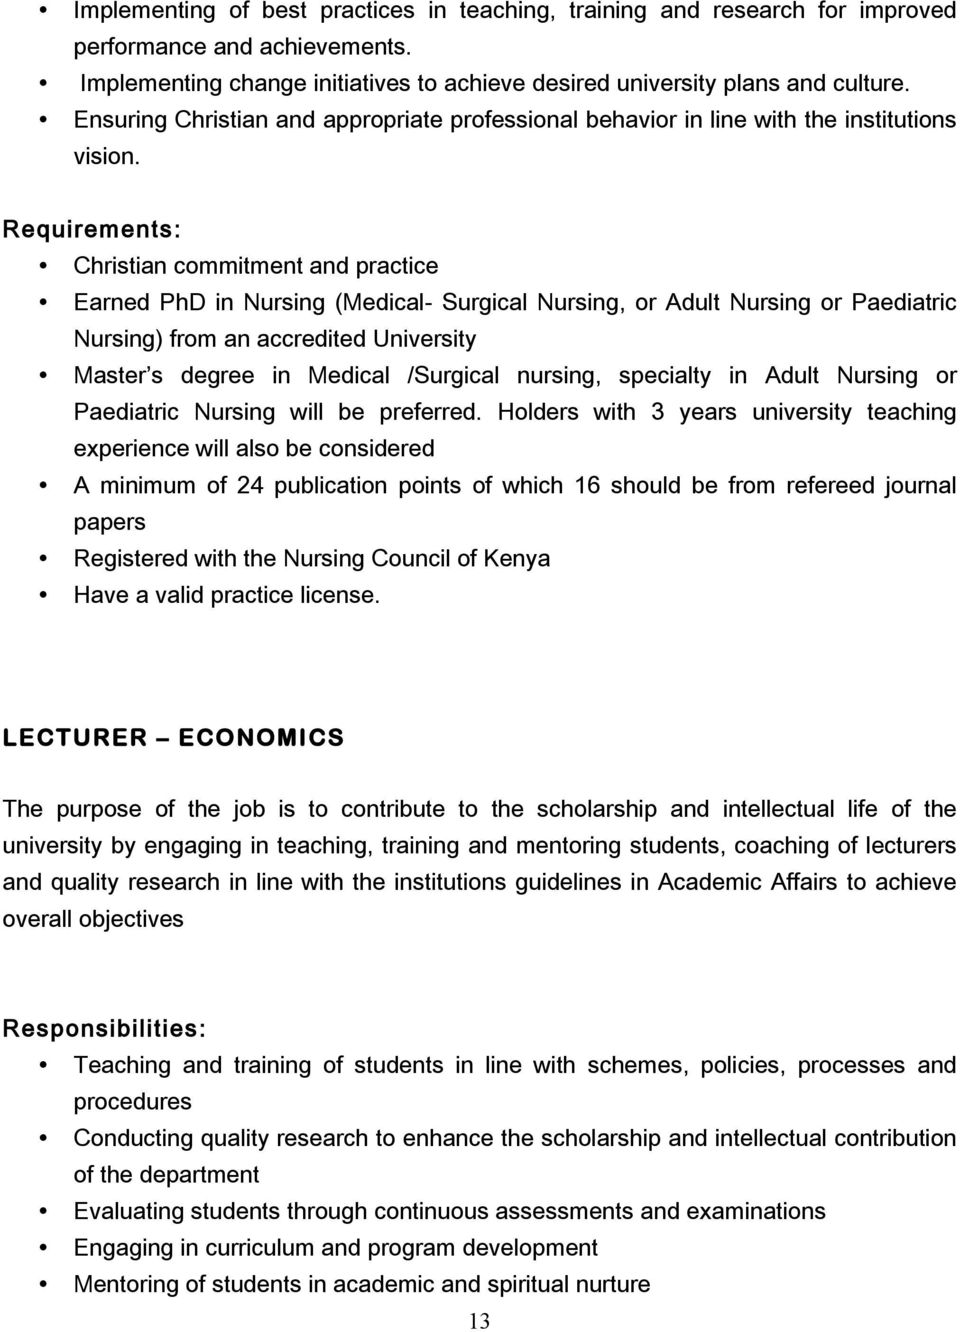 Requirements: Earned PhD in Nursing (Medical- Surgical Nursing, or Adult Nursing or Paediatric Nursing) from an accredited University Master s degree in Medical /Surgical nursing, specialty in Adult